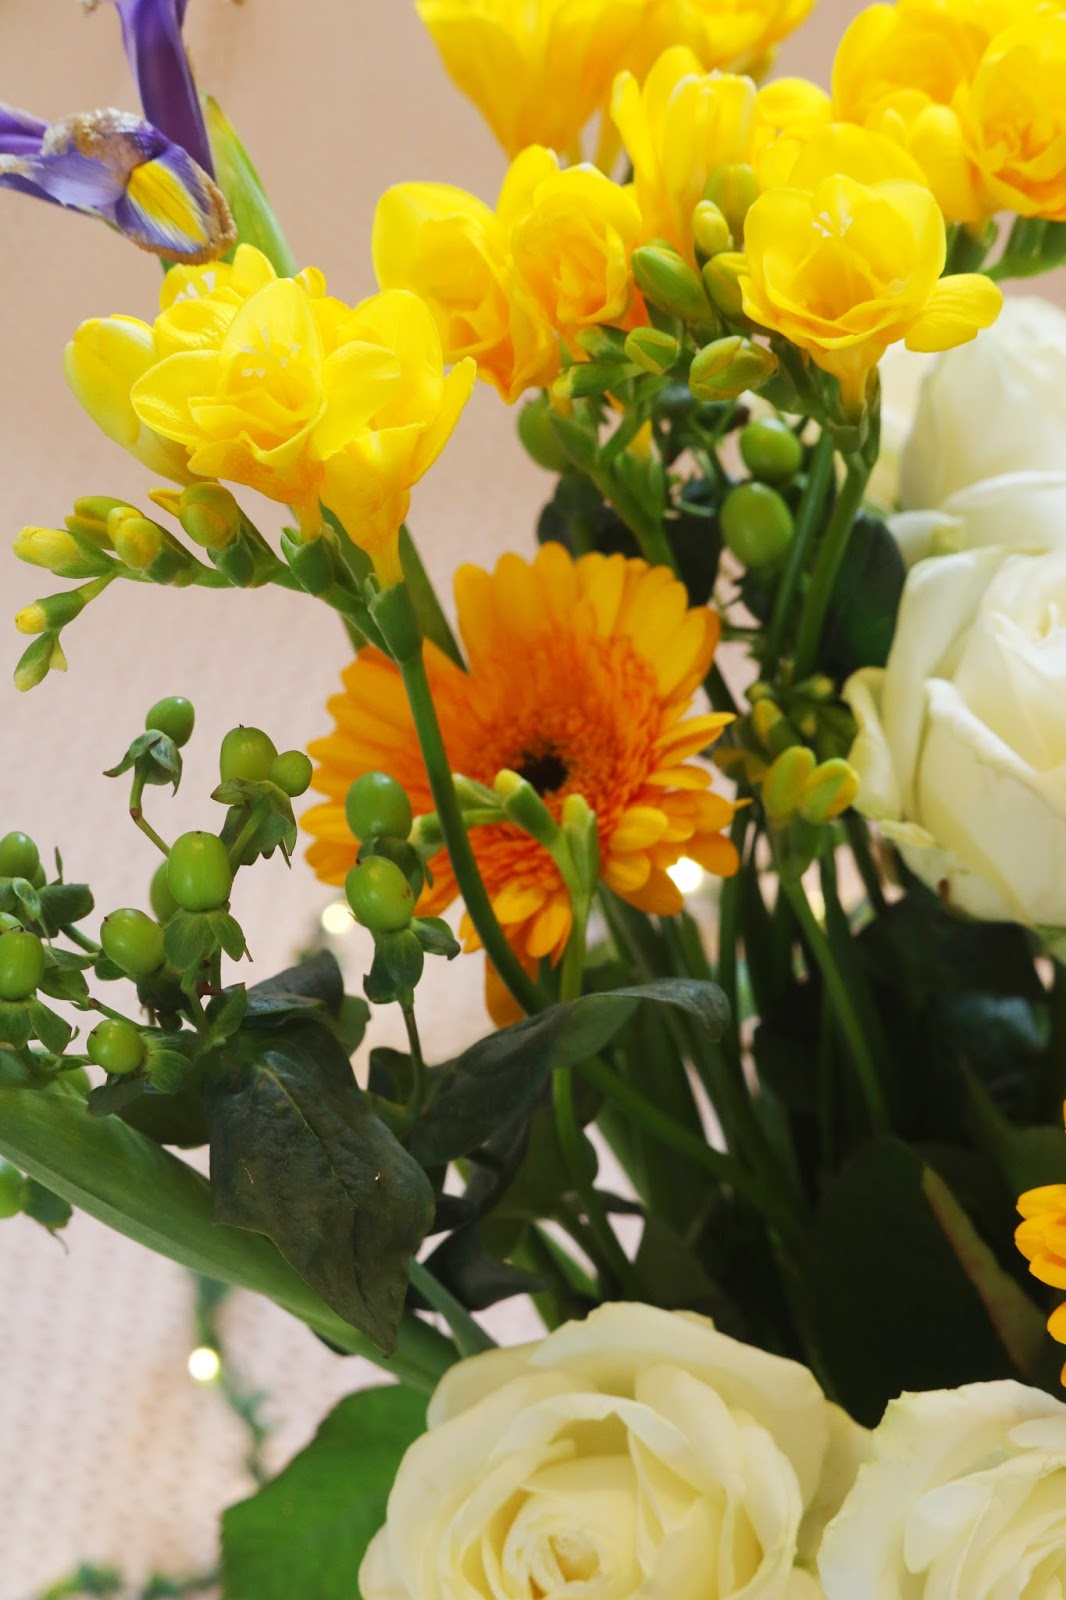 The most beautiful home flowers. Freesia